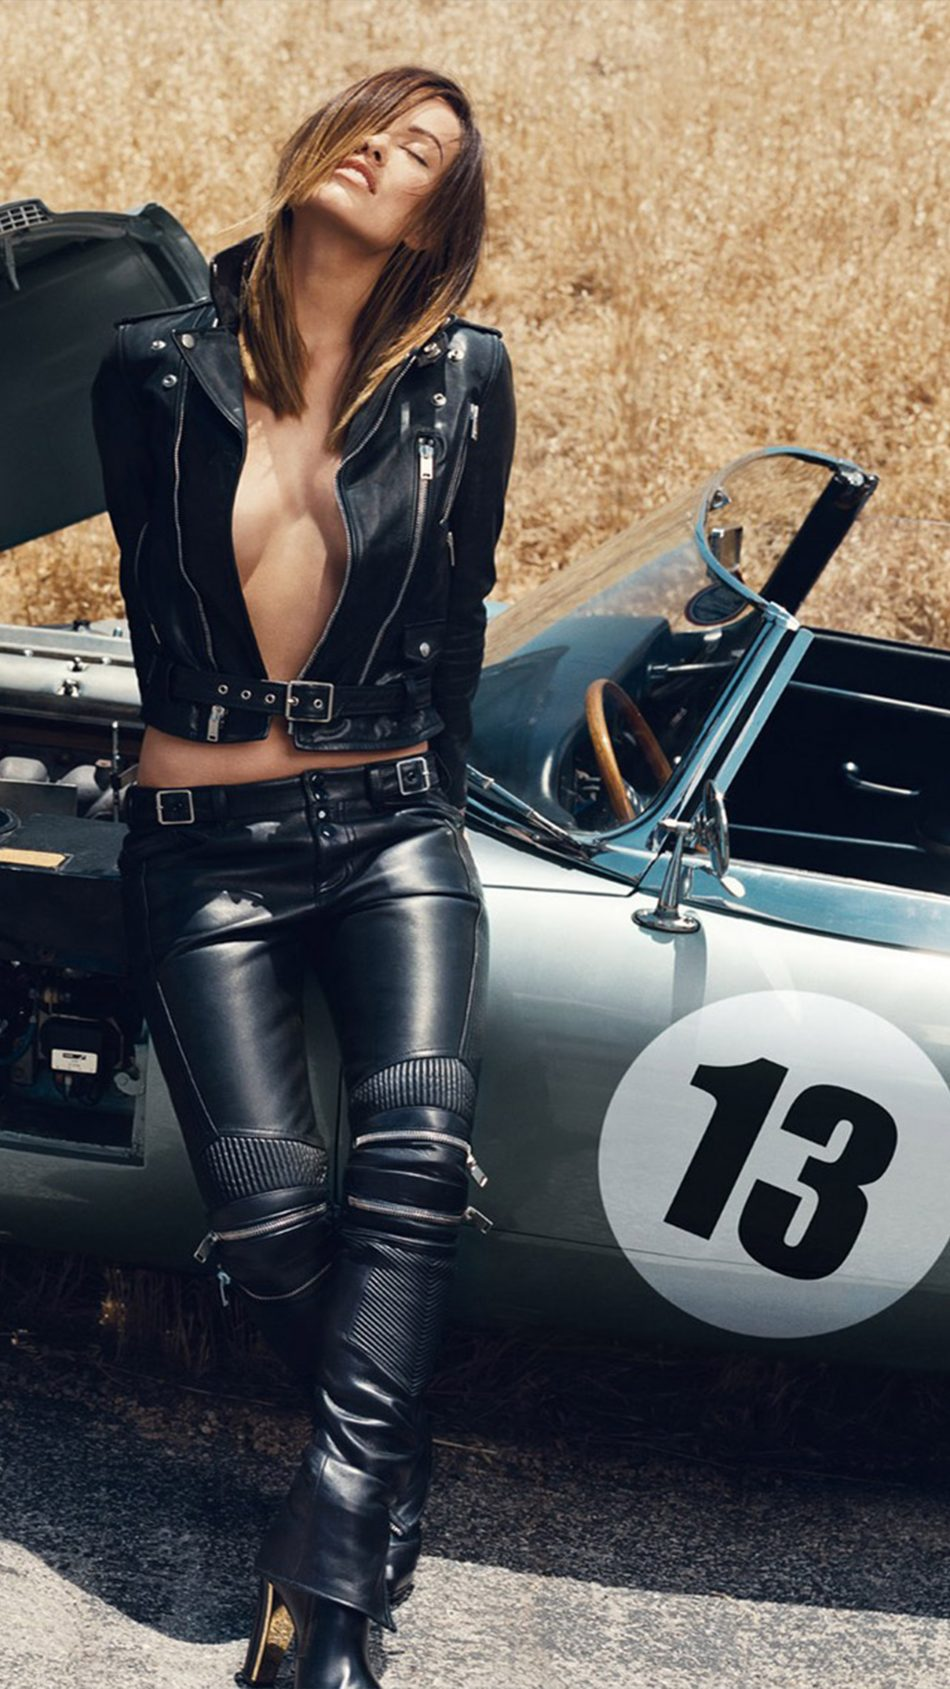 Quotes Wallpaper For Mobile Phones Download Olivia Wilde Hot Car Photoshoot Free Pure 4k